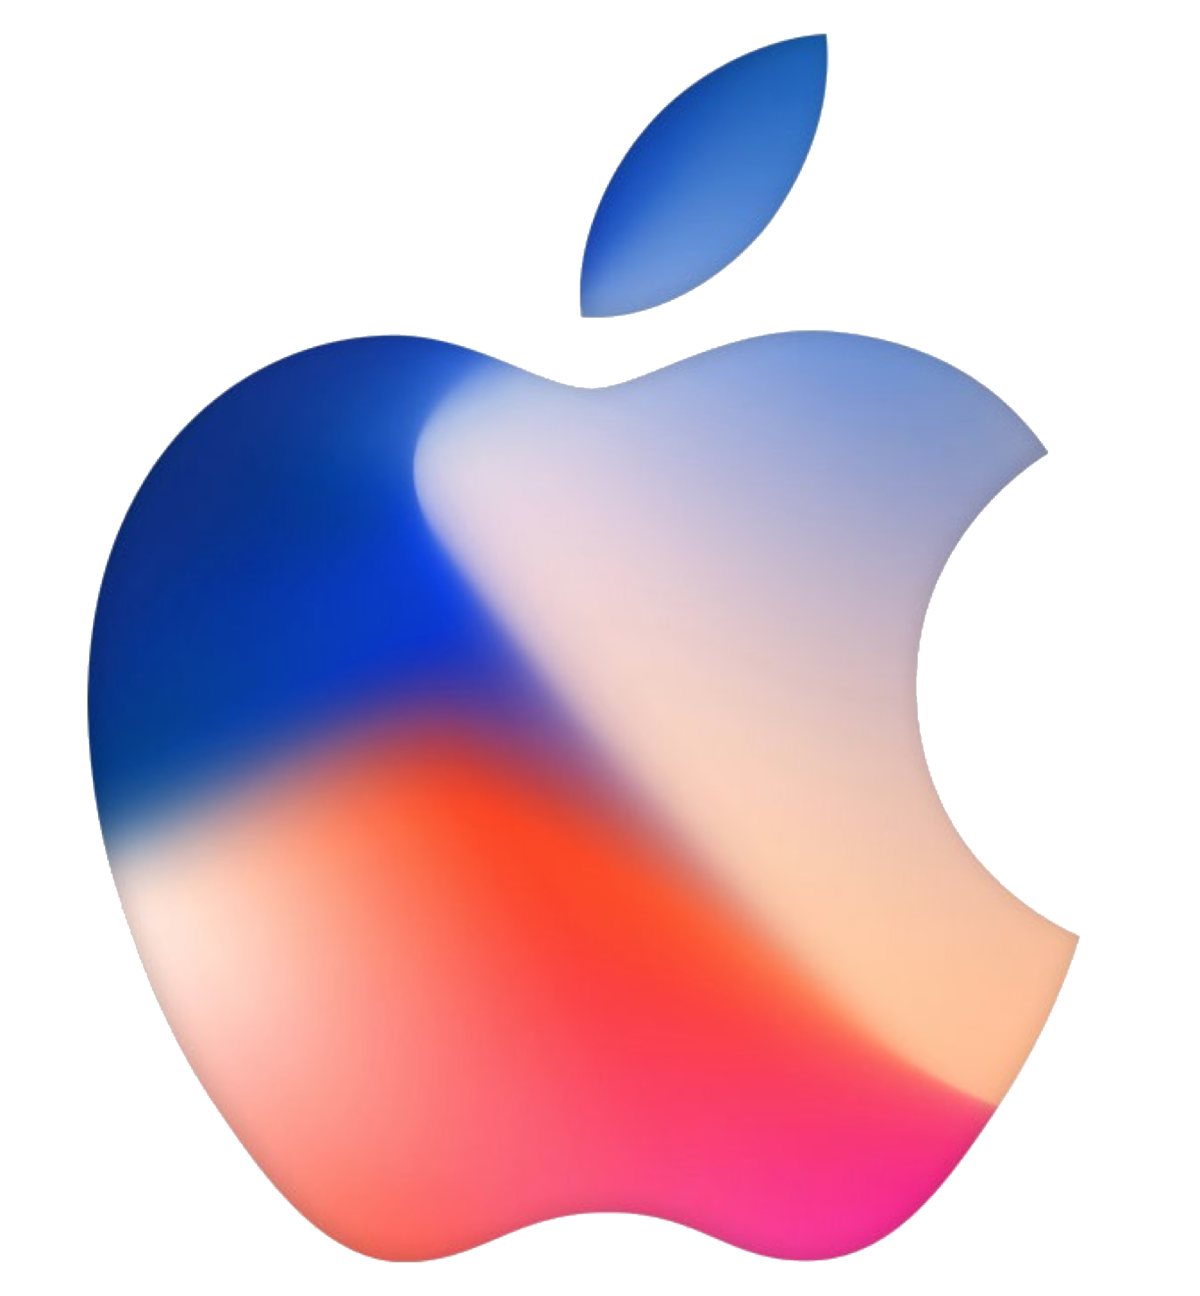 Apple to Build New Campus in Austin, Add Sites in Seattle, San Diego and Culver City